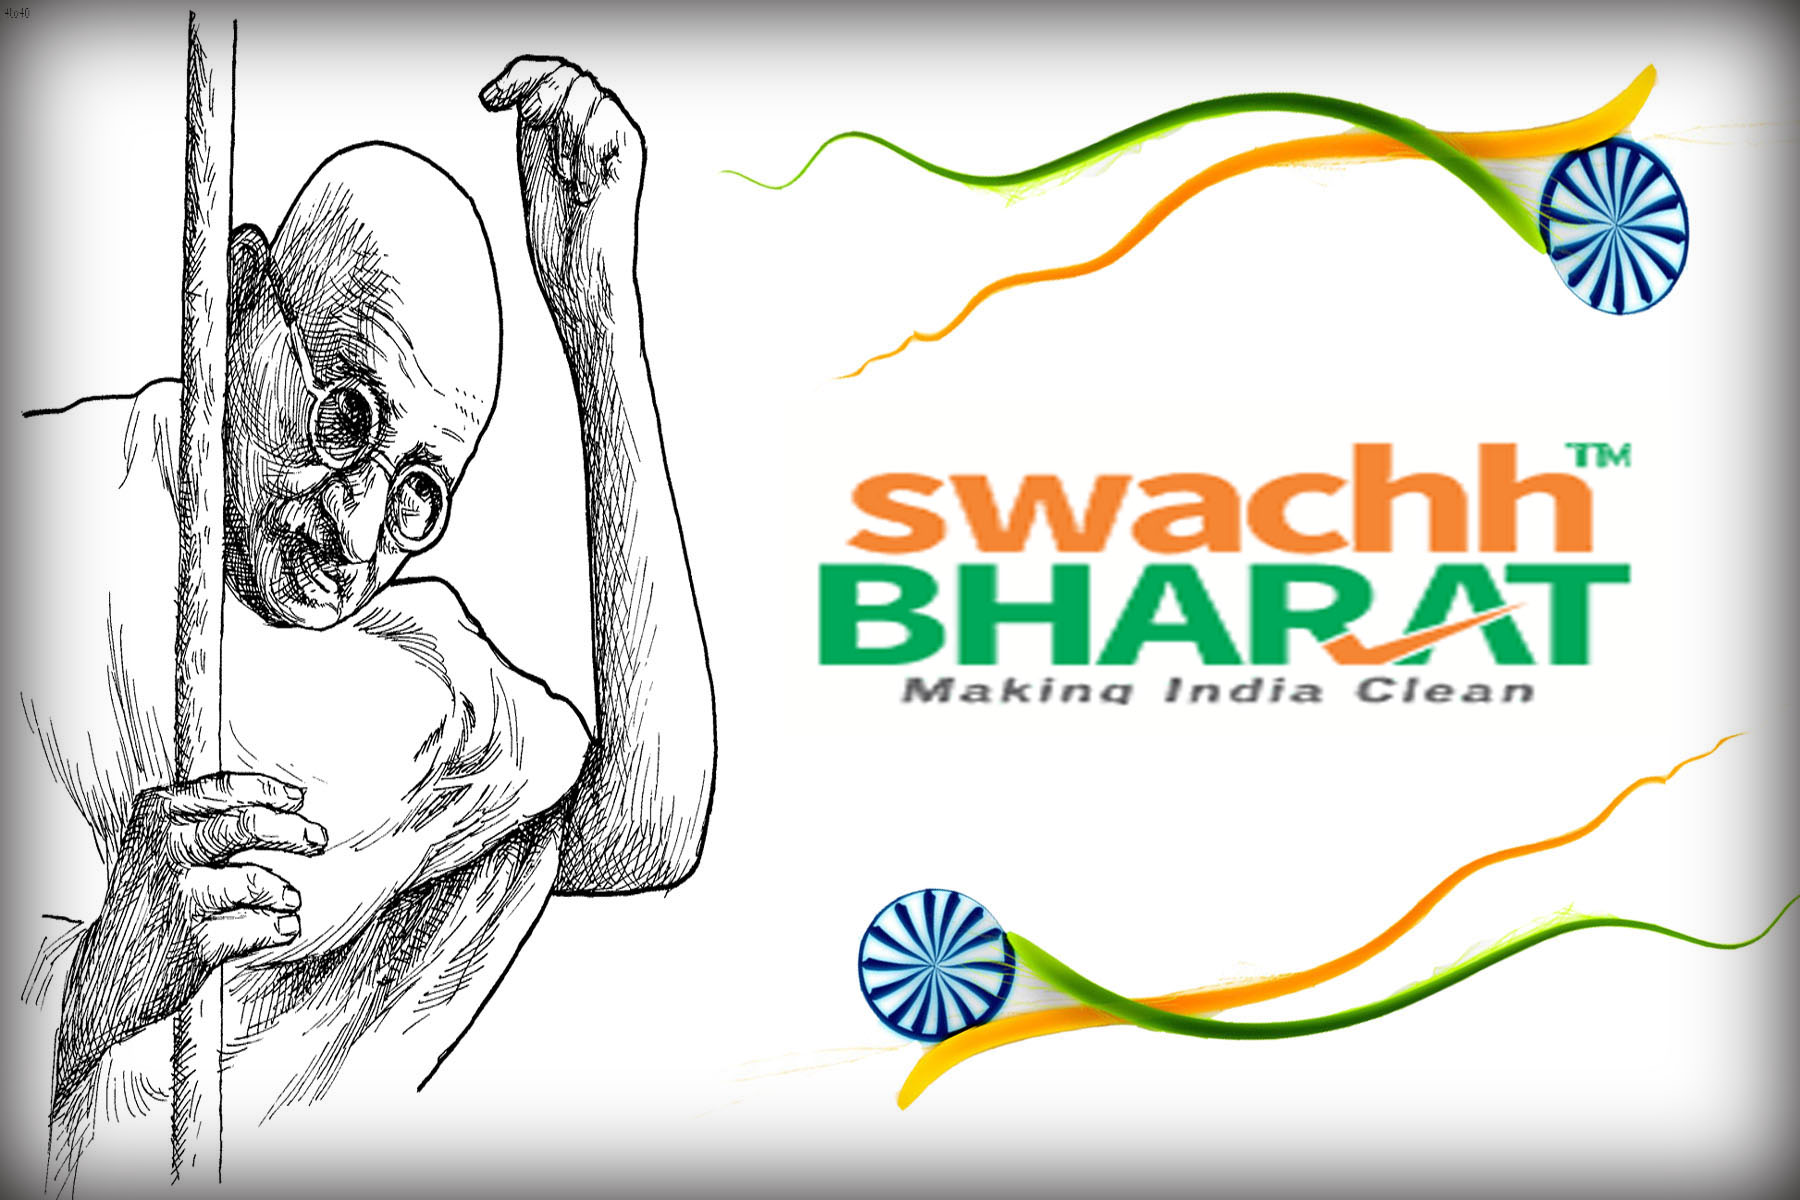 Swachh Bharat Abhiyan: Dreams Don't Work untill You Do